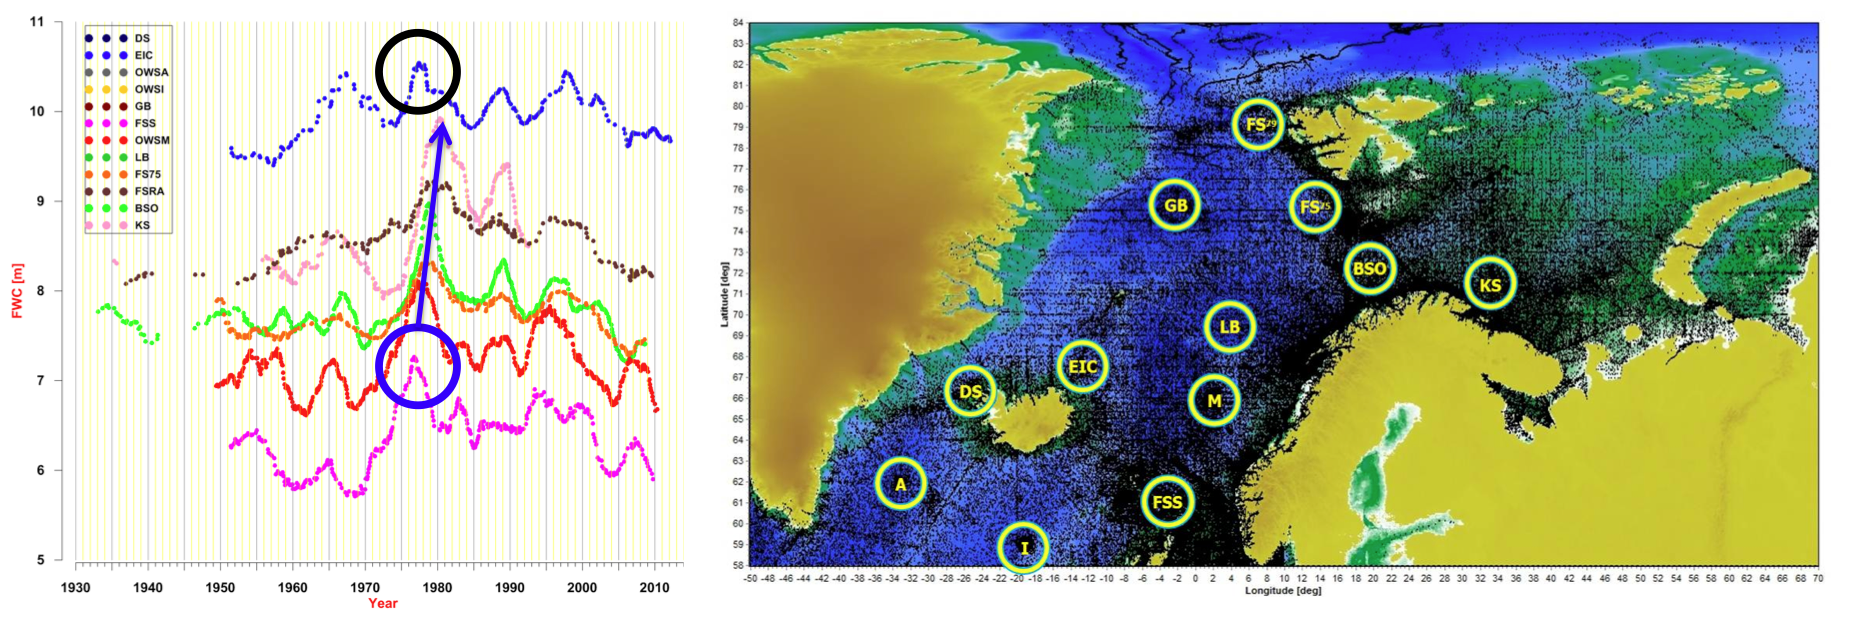 On the left the fresh water content time series computed from in-situ data at the respectively named areas is presented. It shows an anomaly propagating from the south to the north in the map on the right. The signal coincides with an anomaly entering the system in the East Iceland Current (EIC) (source: Climatological Atlas of the Nordic Seas and Northern North Atlantic, 2013)